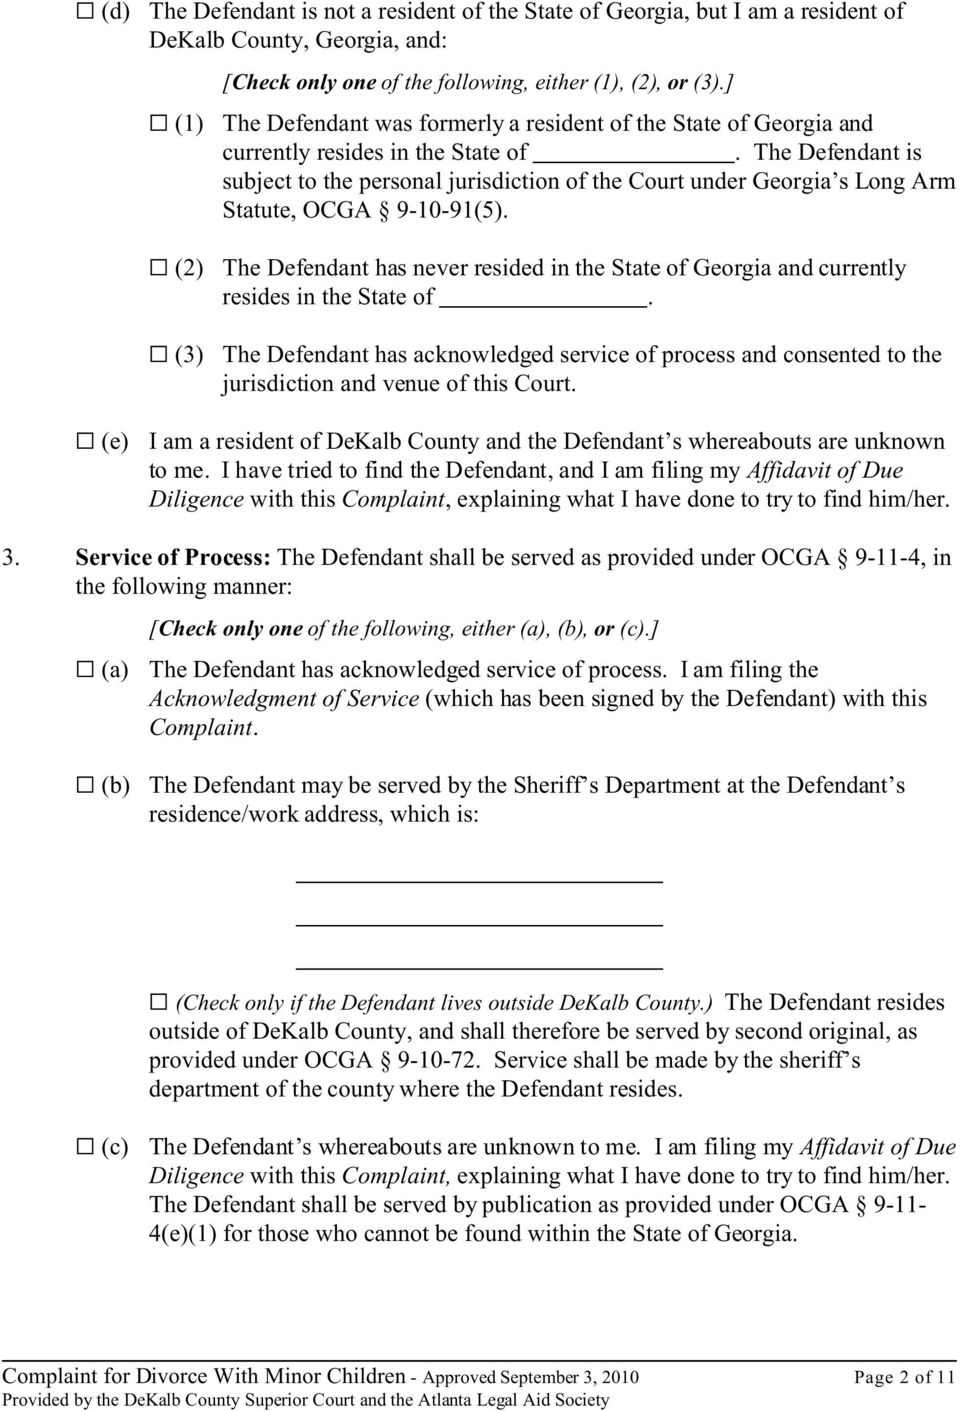 The Defendant is subject to the personal jurisdiction of the Court under Georgia s Long Arm Statute, OCGA 9-10-91(5).